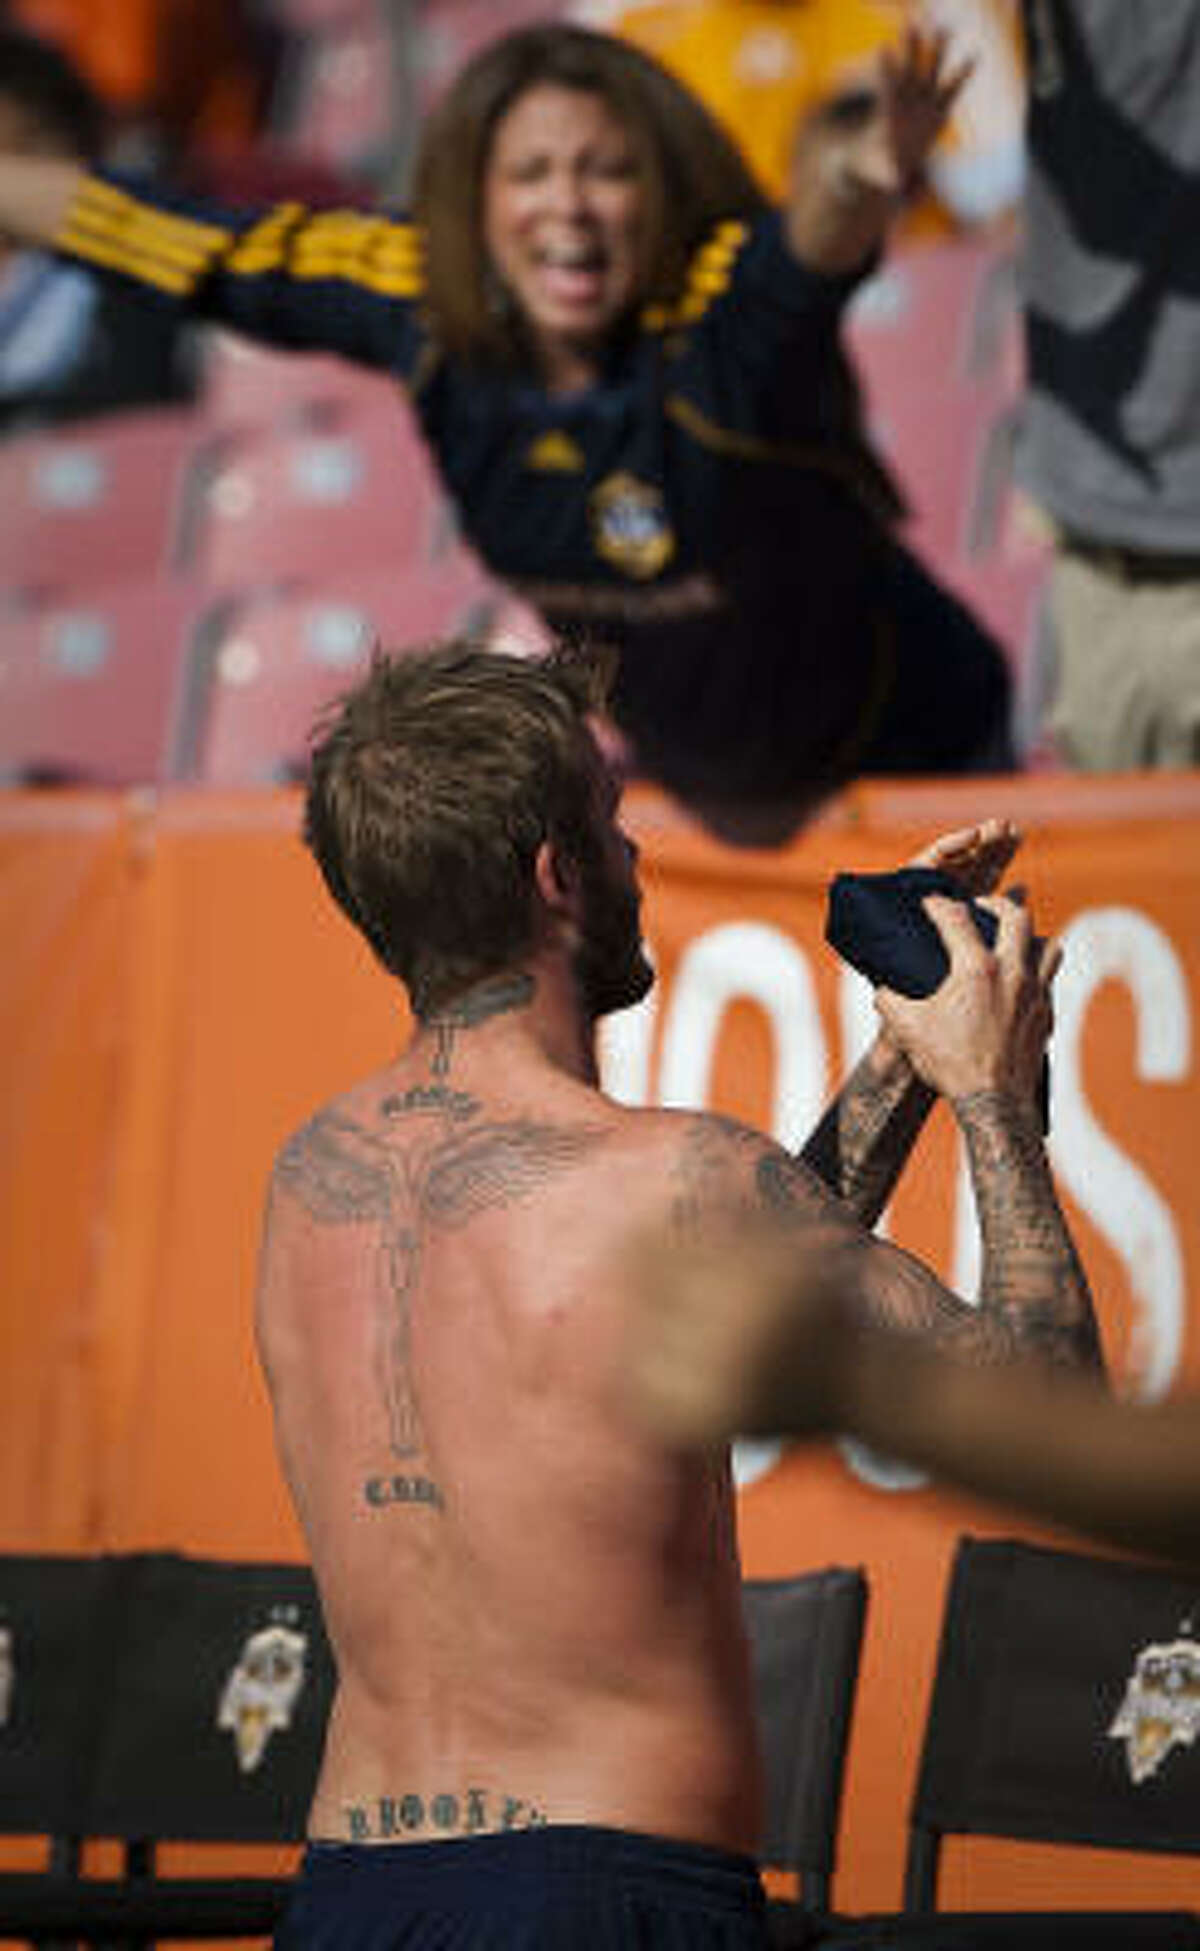 David Beckham of the Los Angeles Galaxy tosses his jersey into the stands following the game.